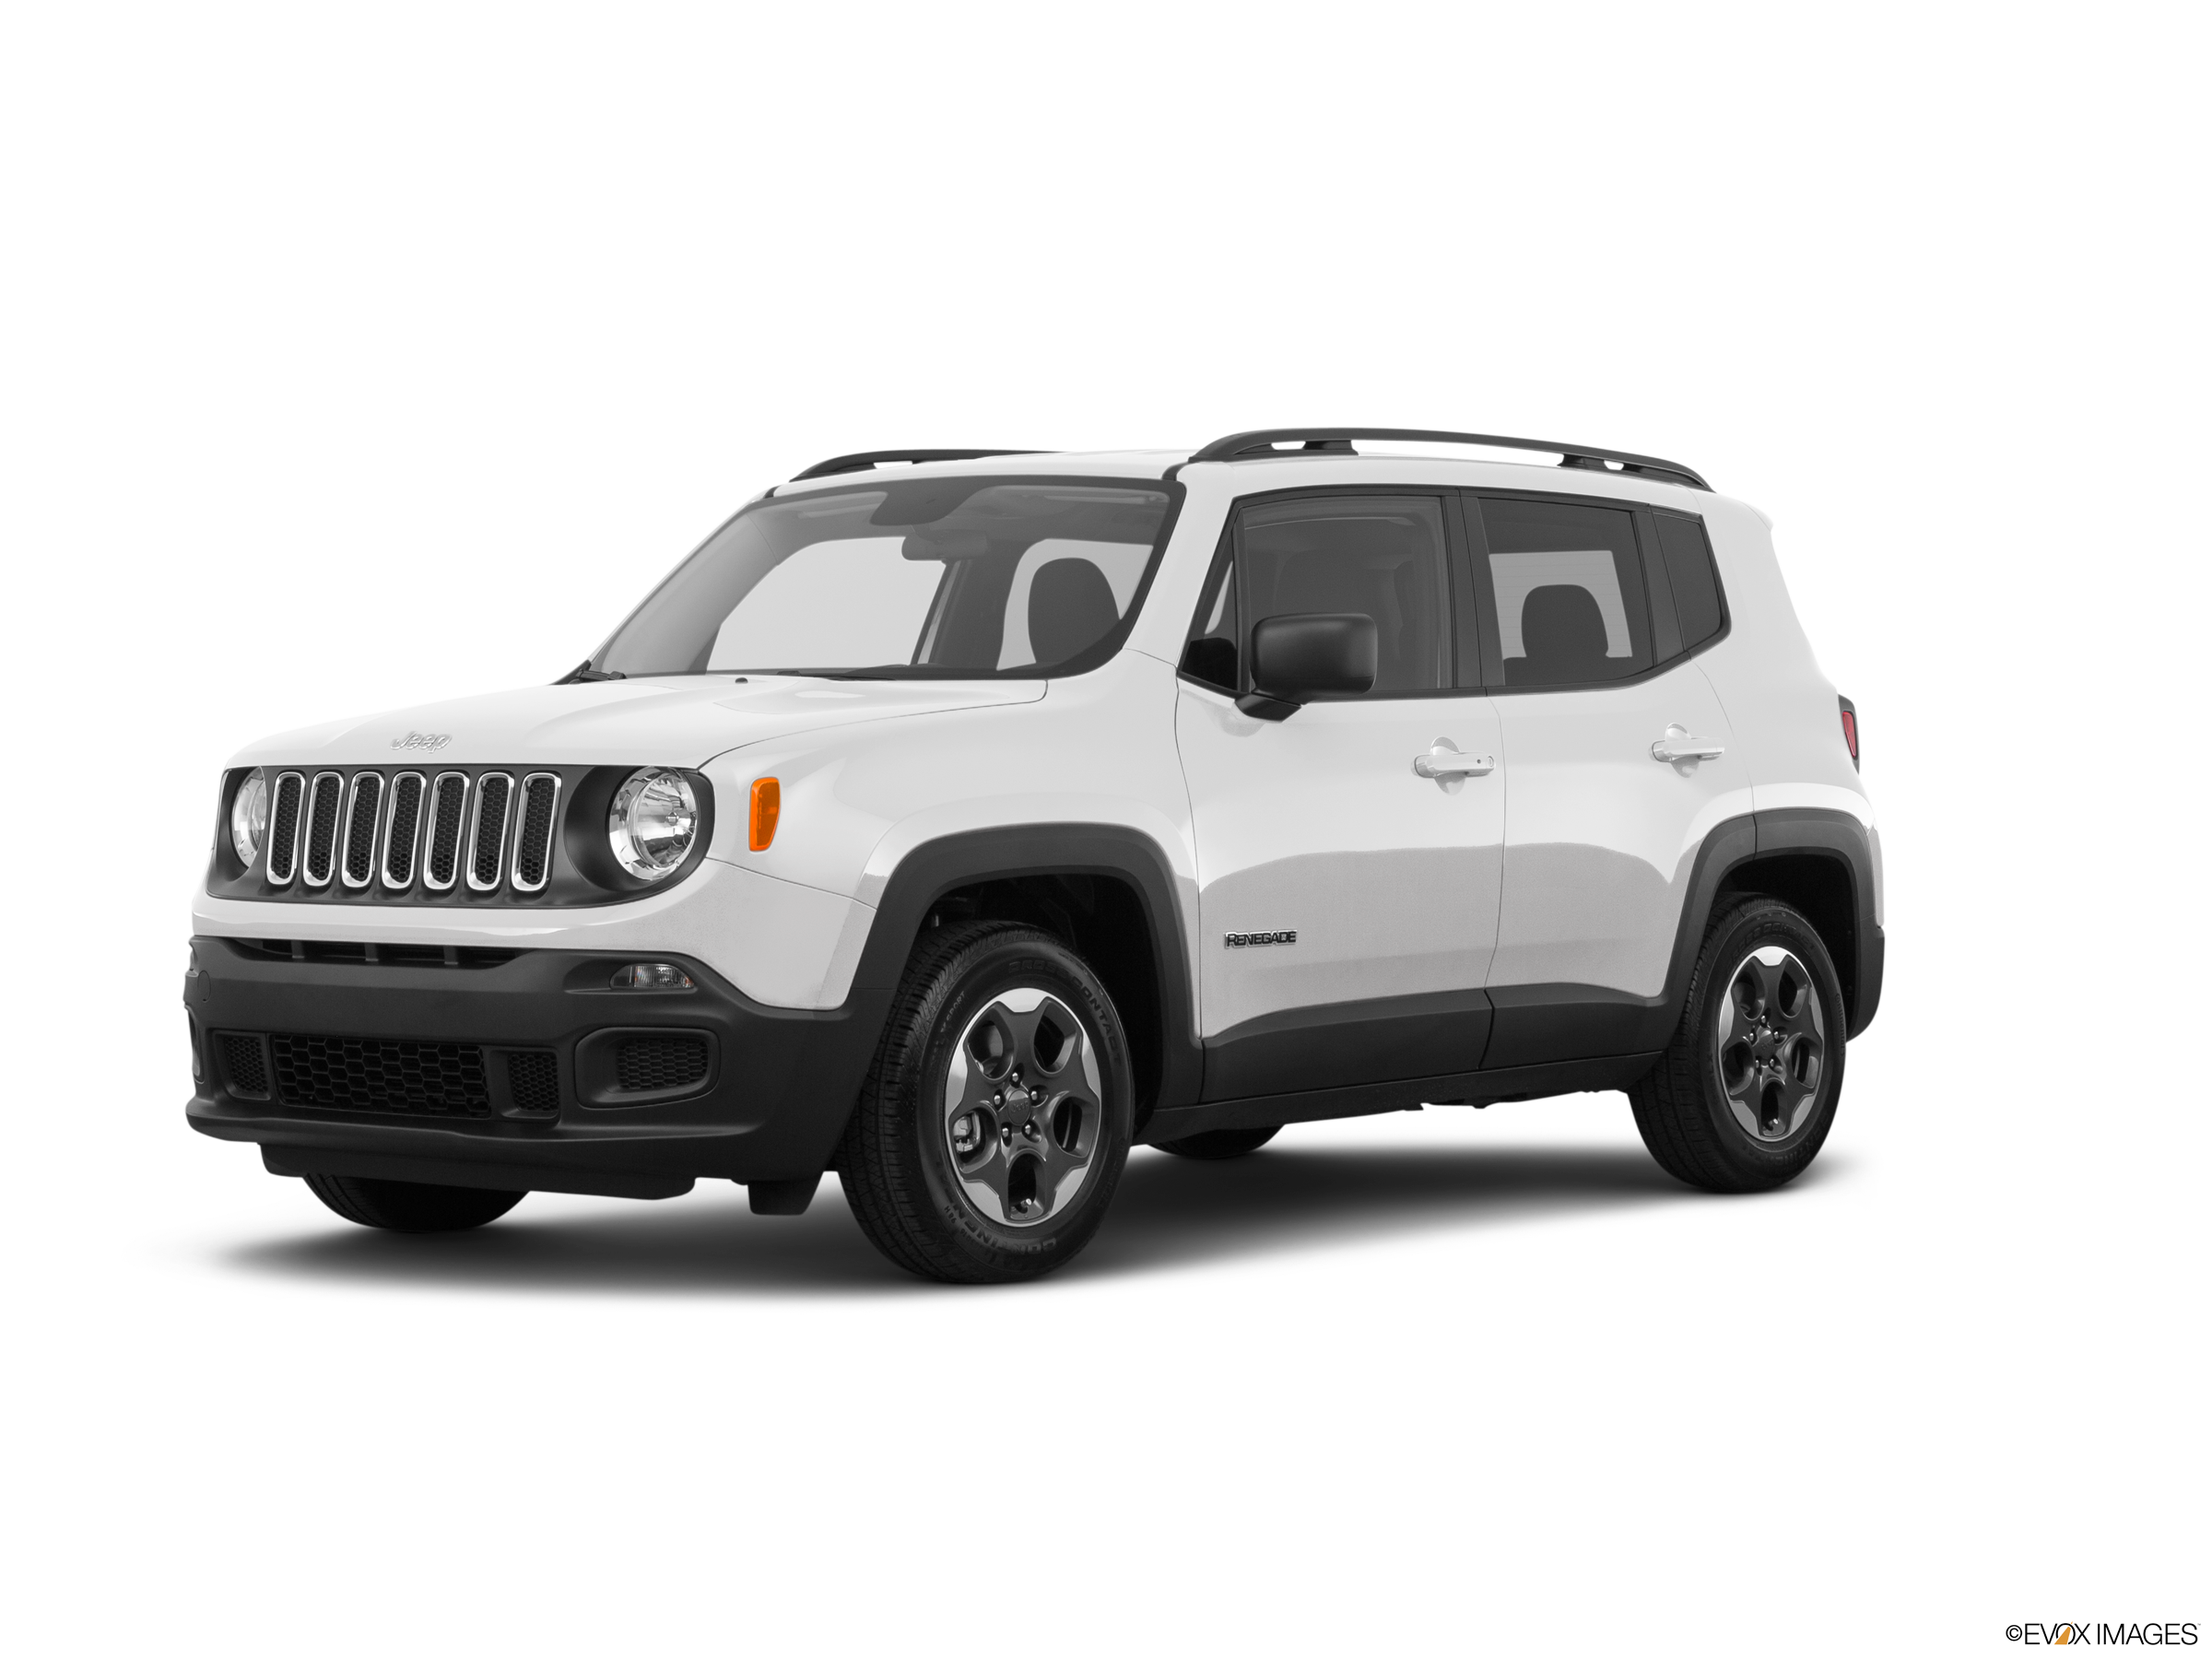 10 Coolest New Cars Under $18,000 - 2017 Jeep Renegade